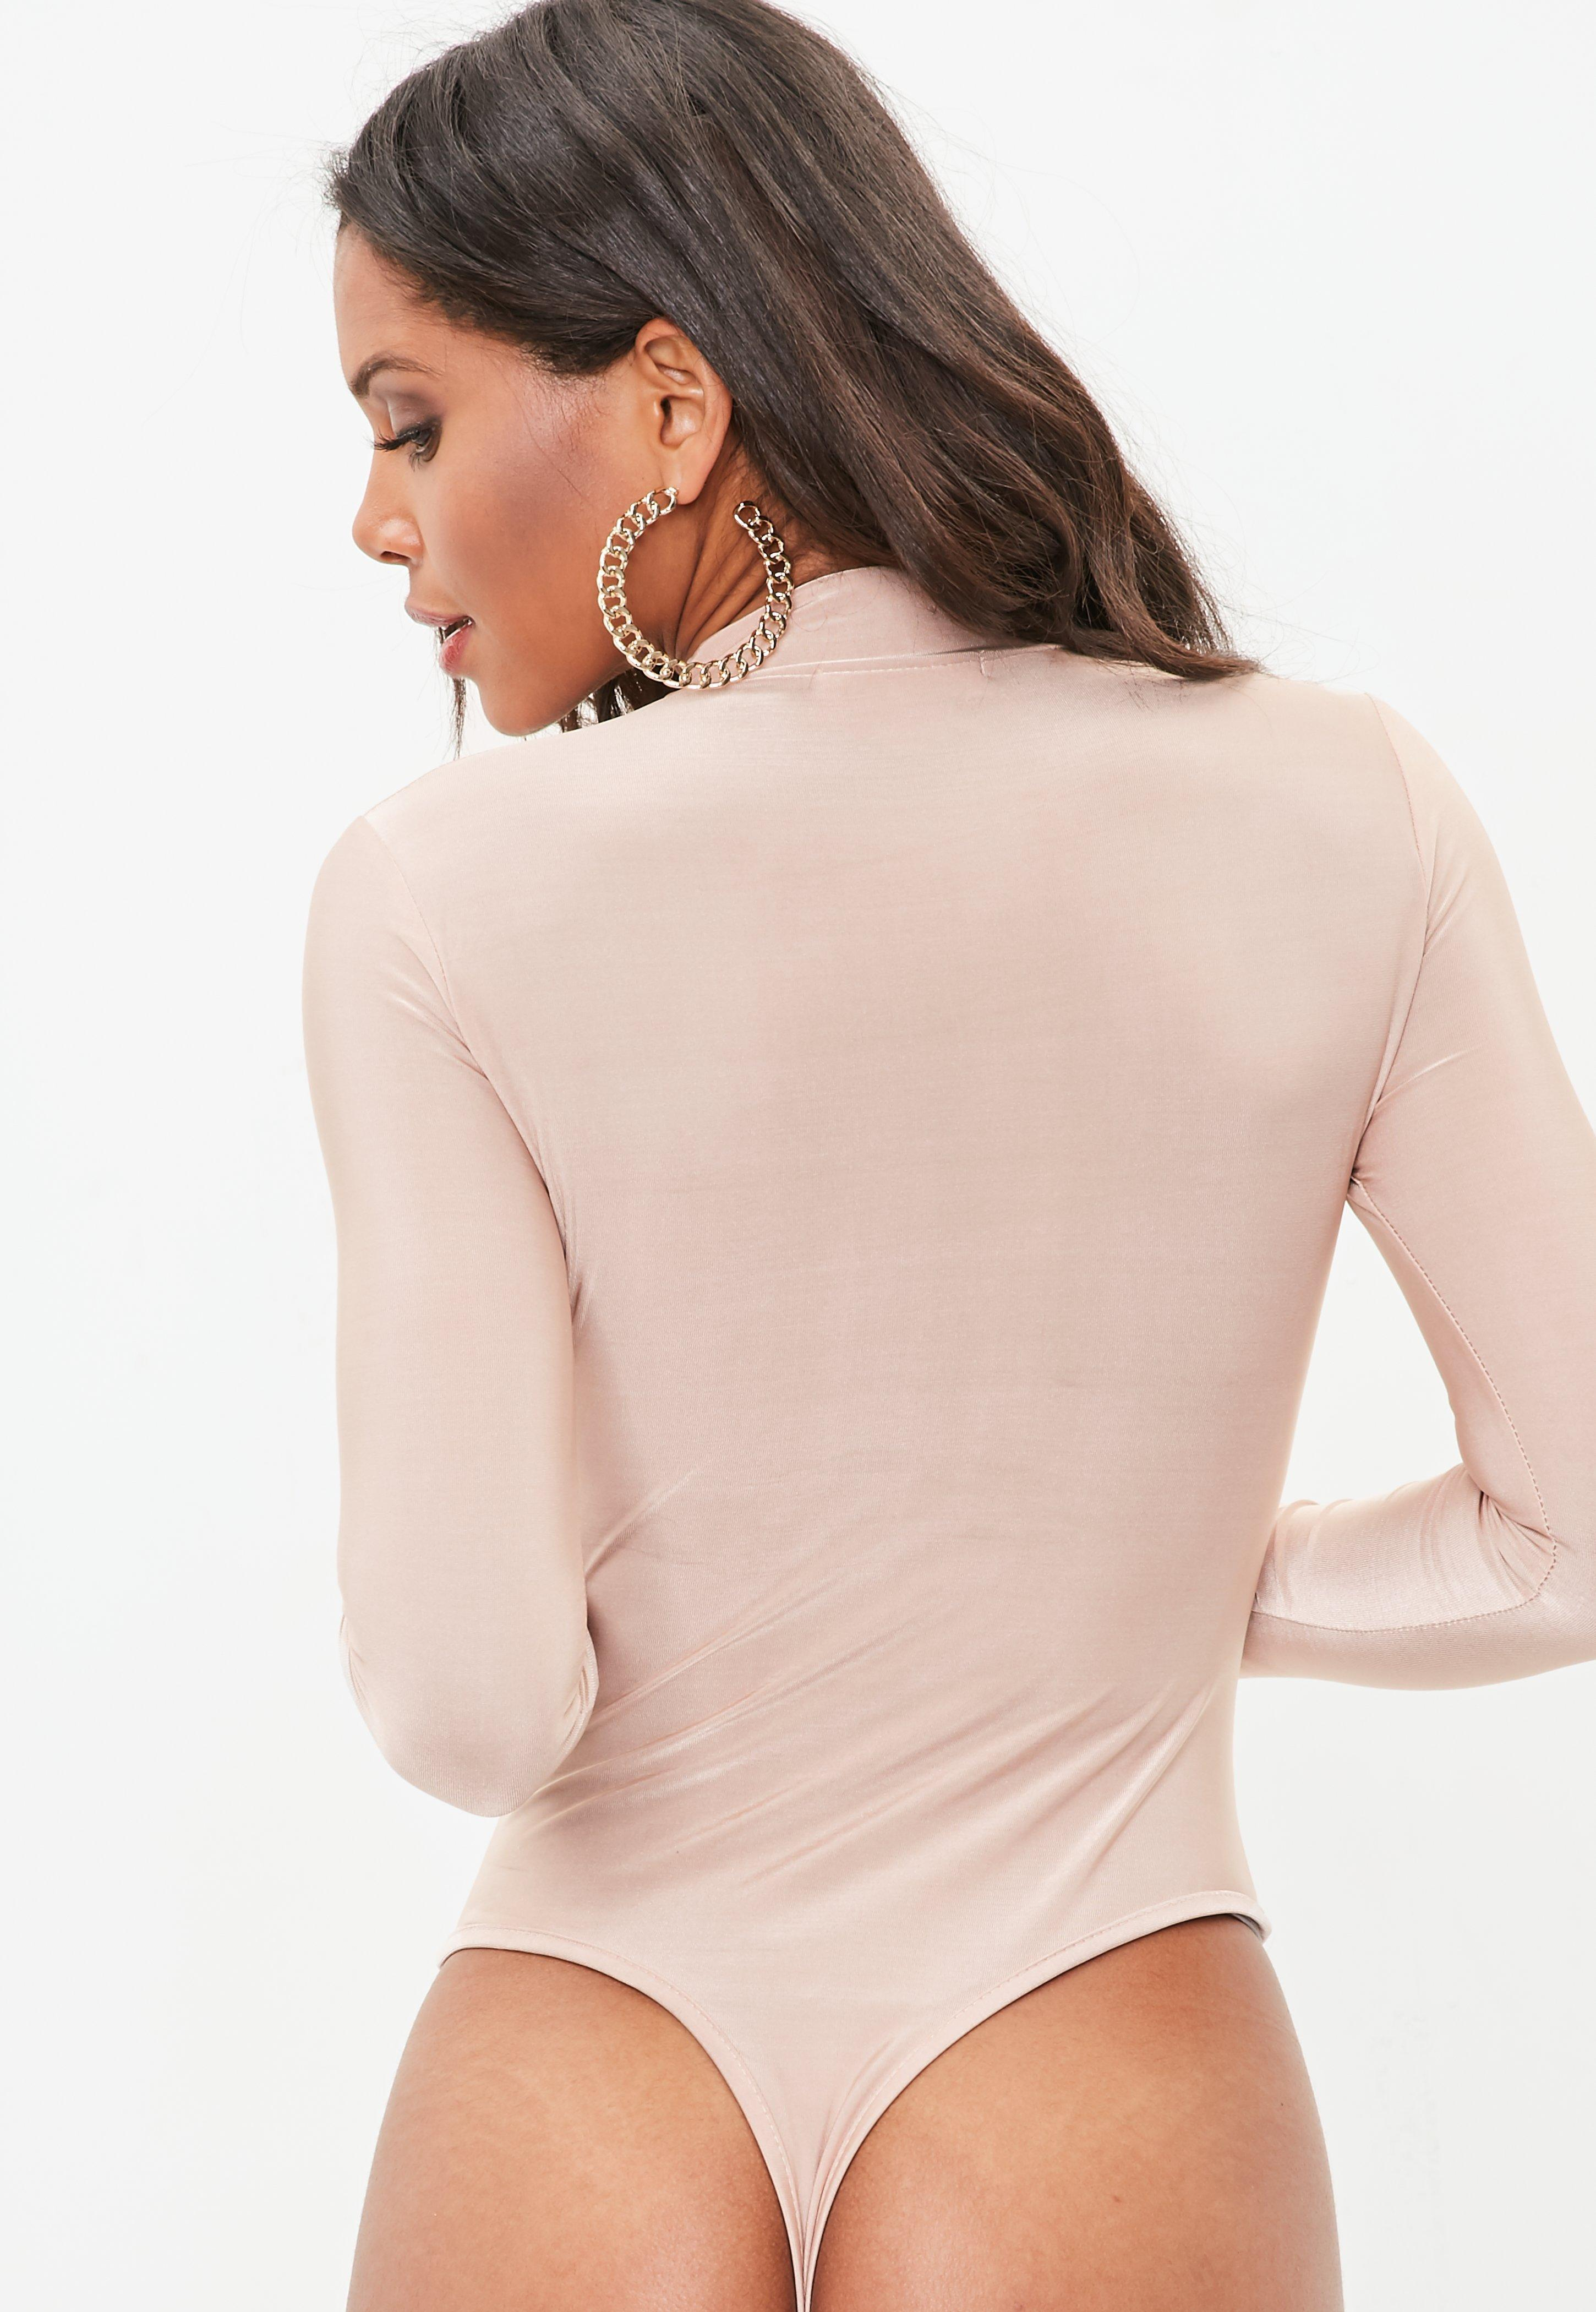 Missguided Nude Long Sleeve Slinky High Neck Bodysuit in Natural - Lyst b95c1872f